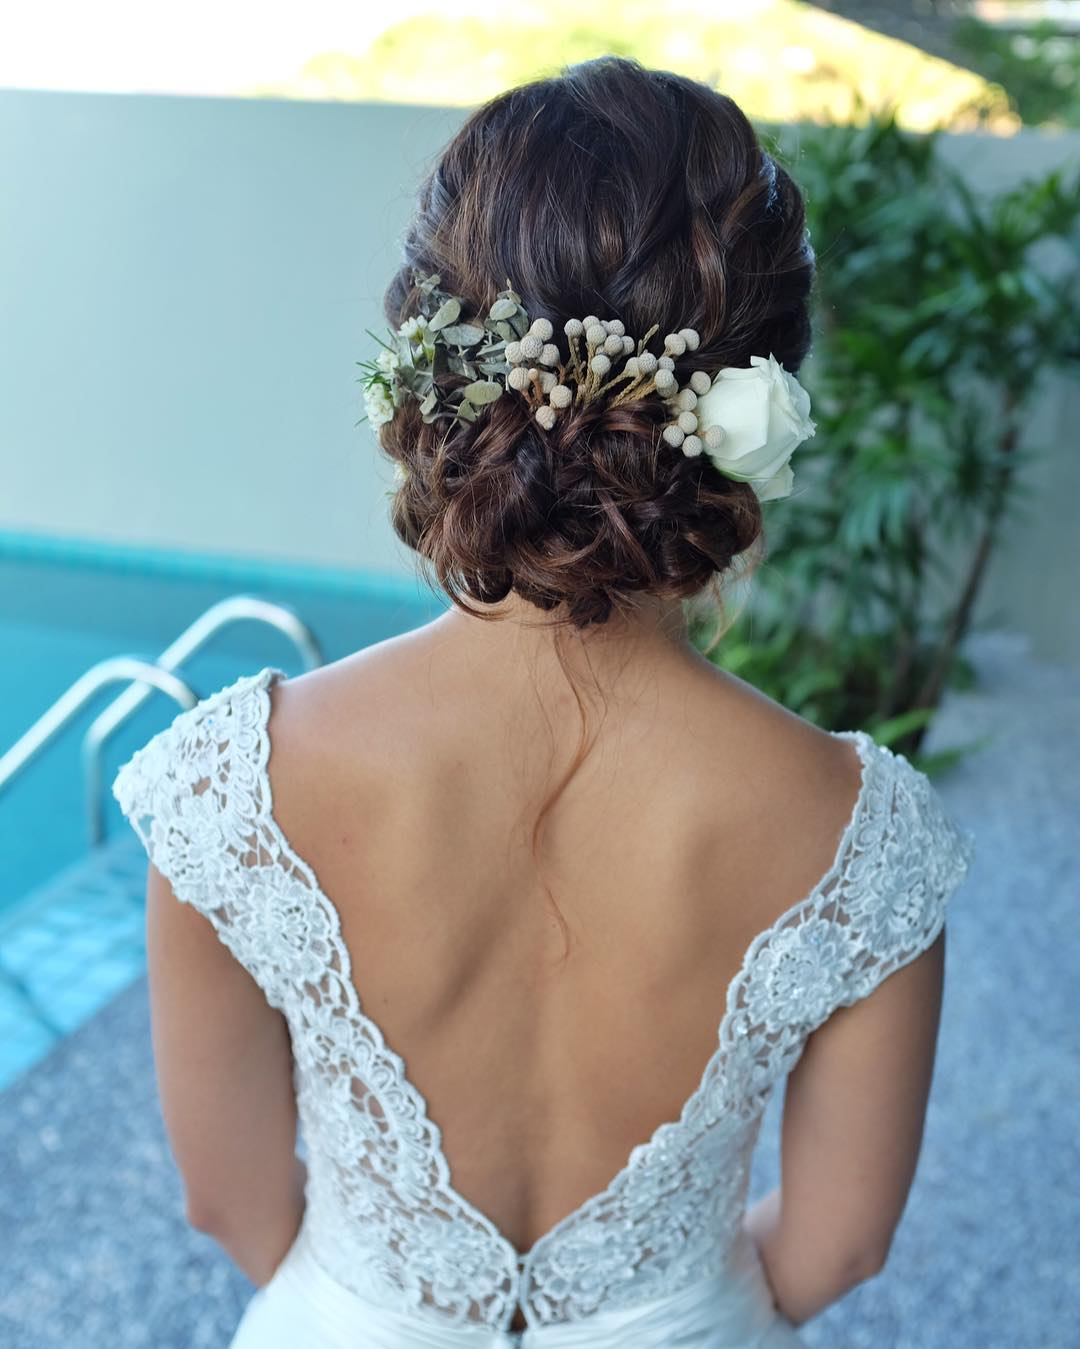 Most Popular Wedding Hairstyles: 30+ Beach Wedding Hairstyles Ideas, Designs